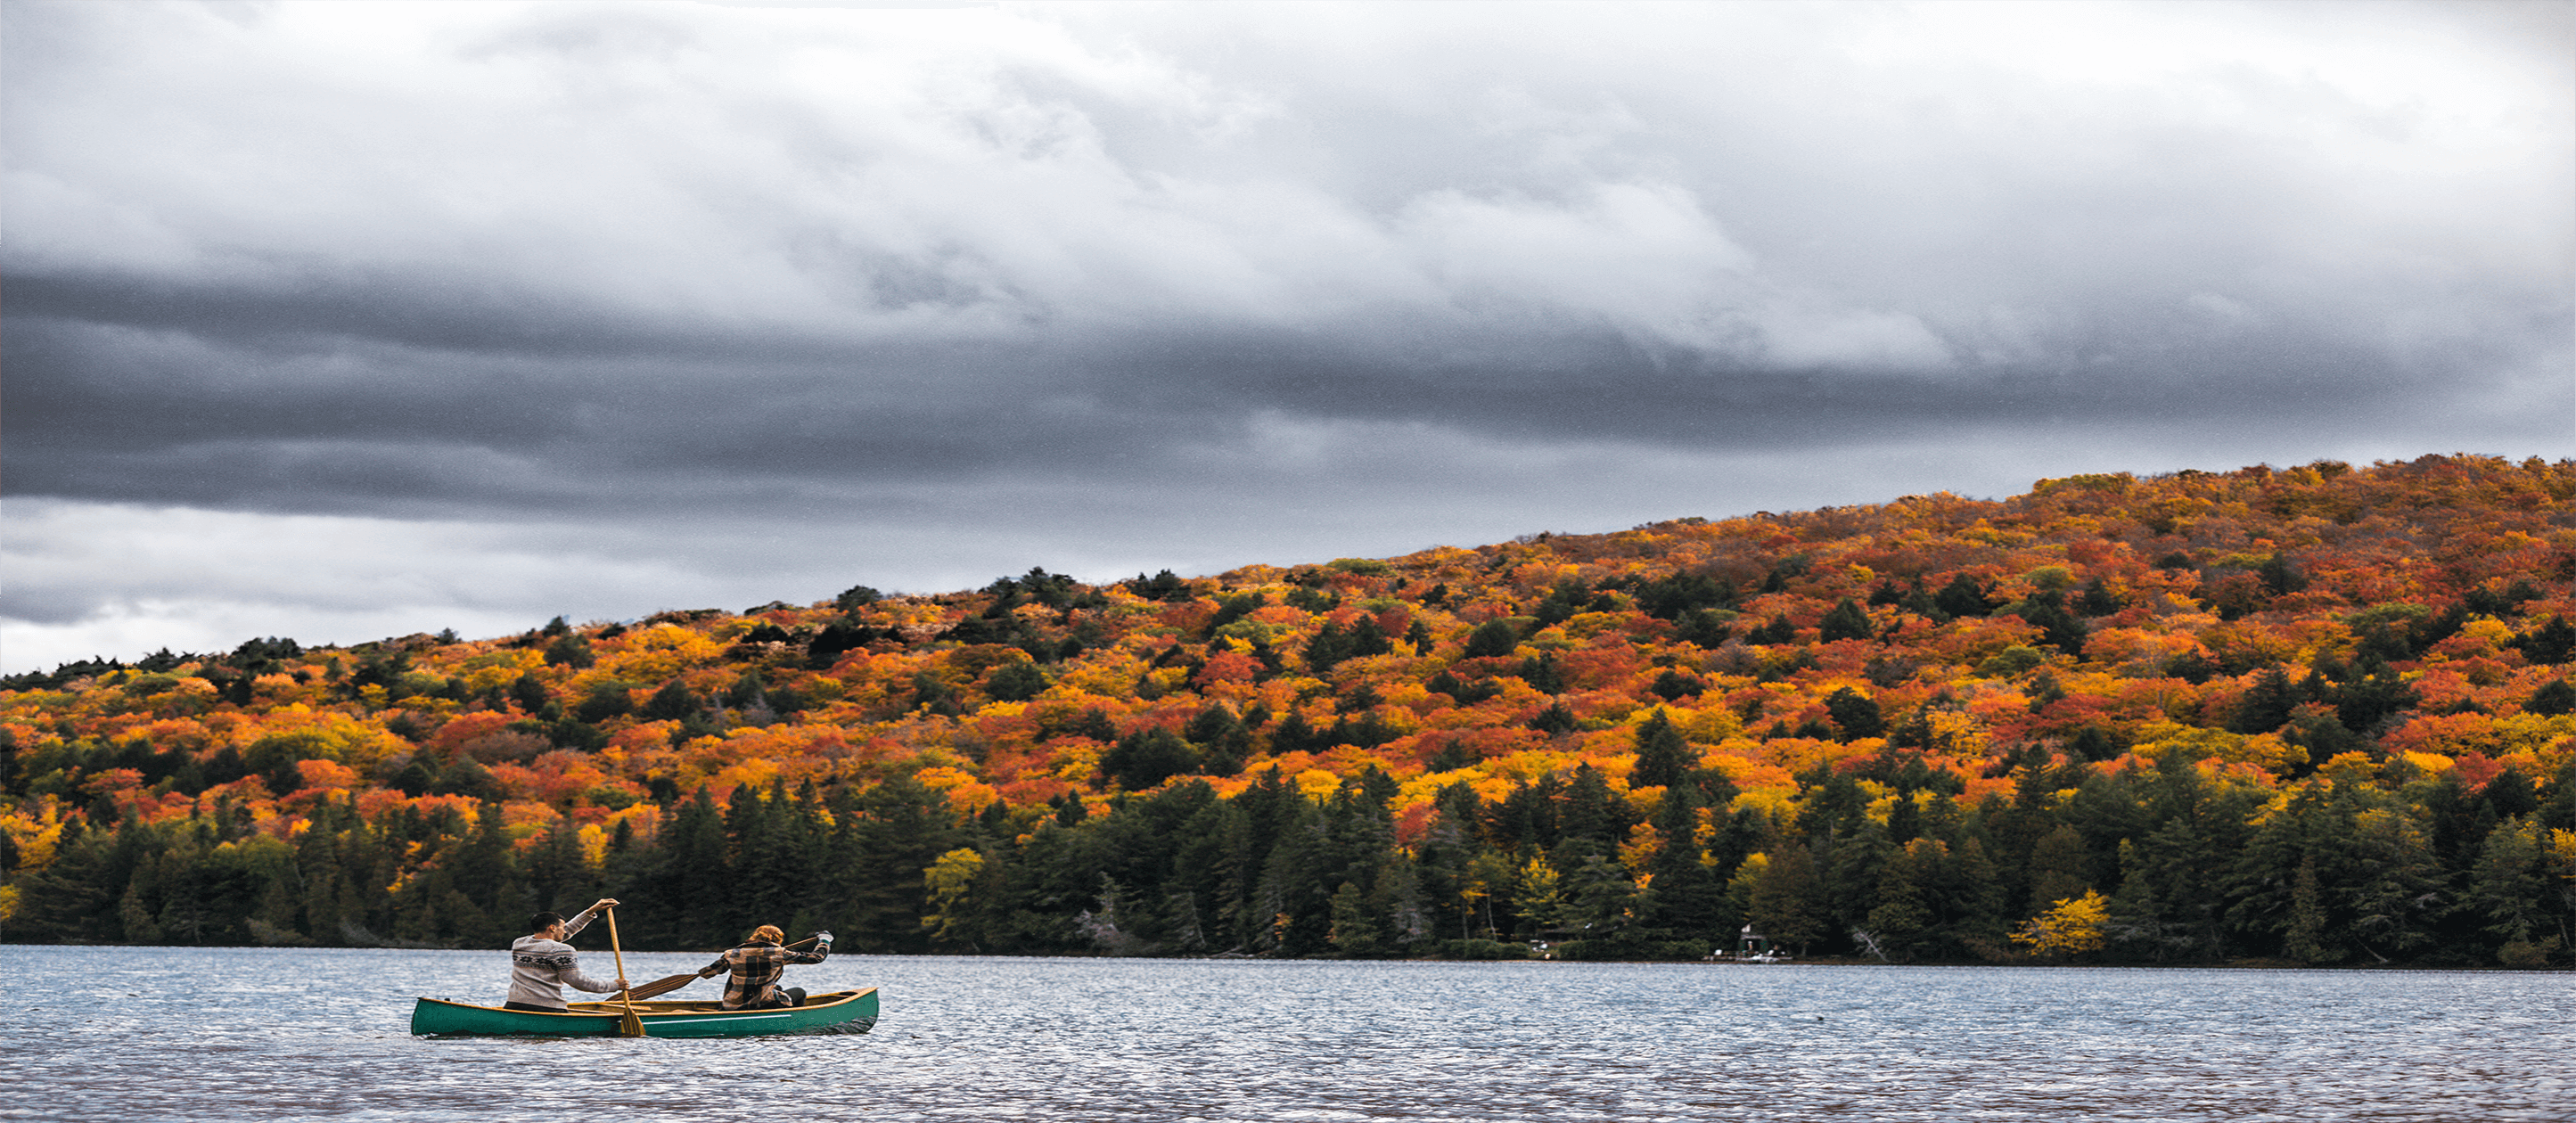 Image of canoe on lake with colorful trees surrounding